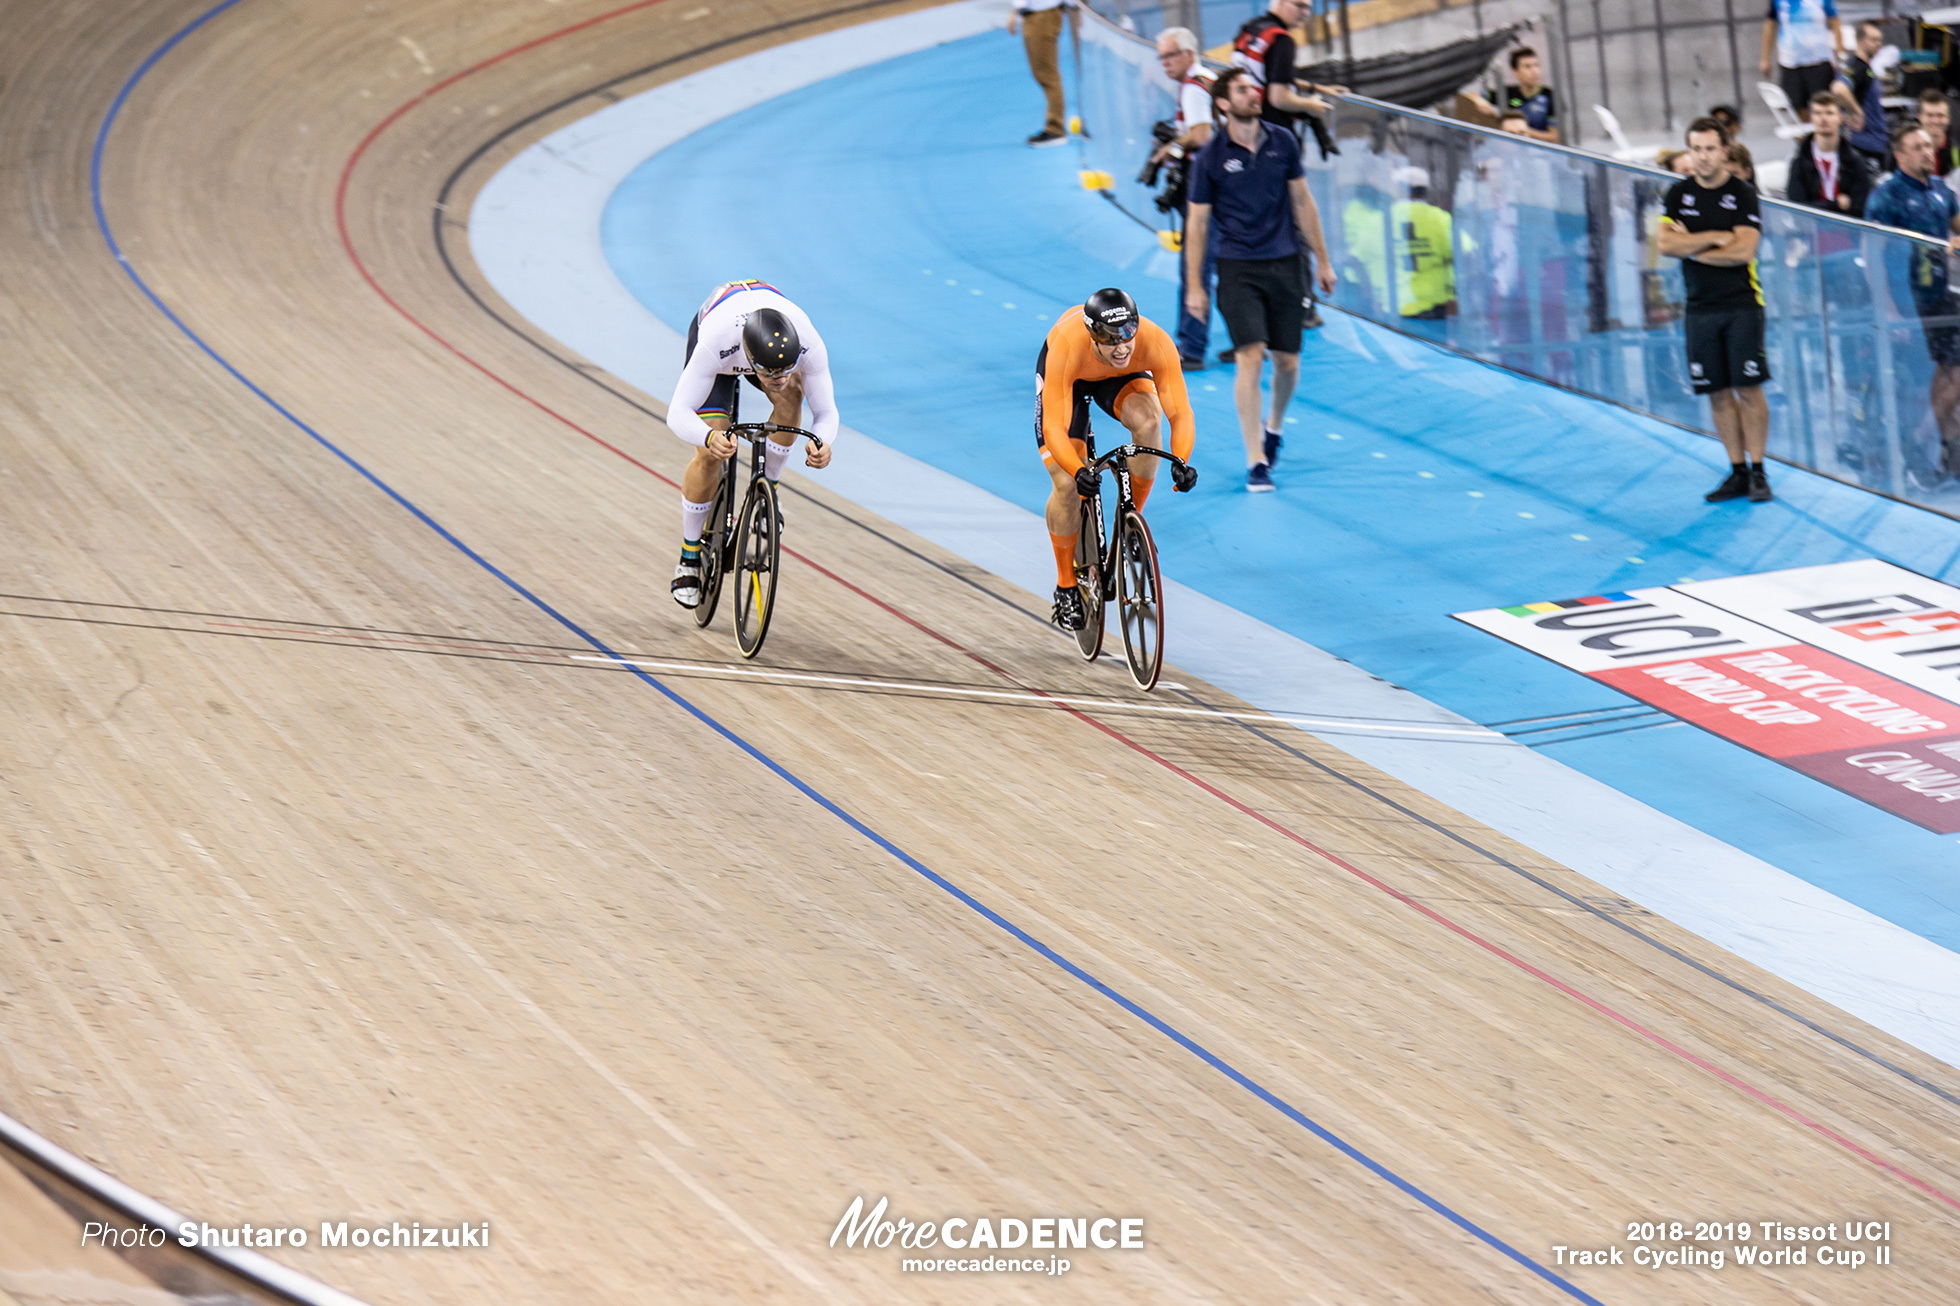 2018-2019 Tissot UCI Track Cycling World Cup II Men's Sprint Final